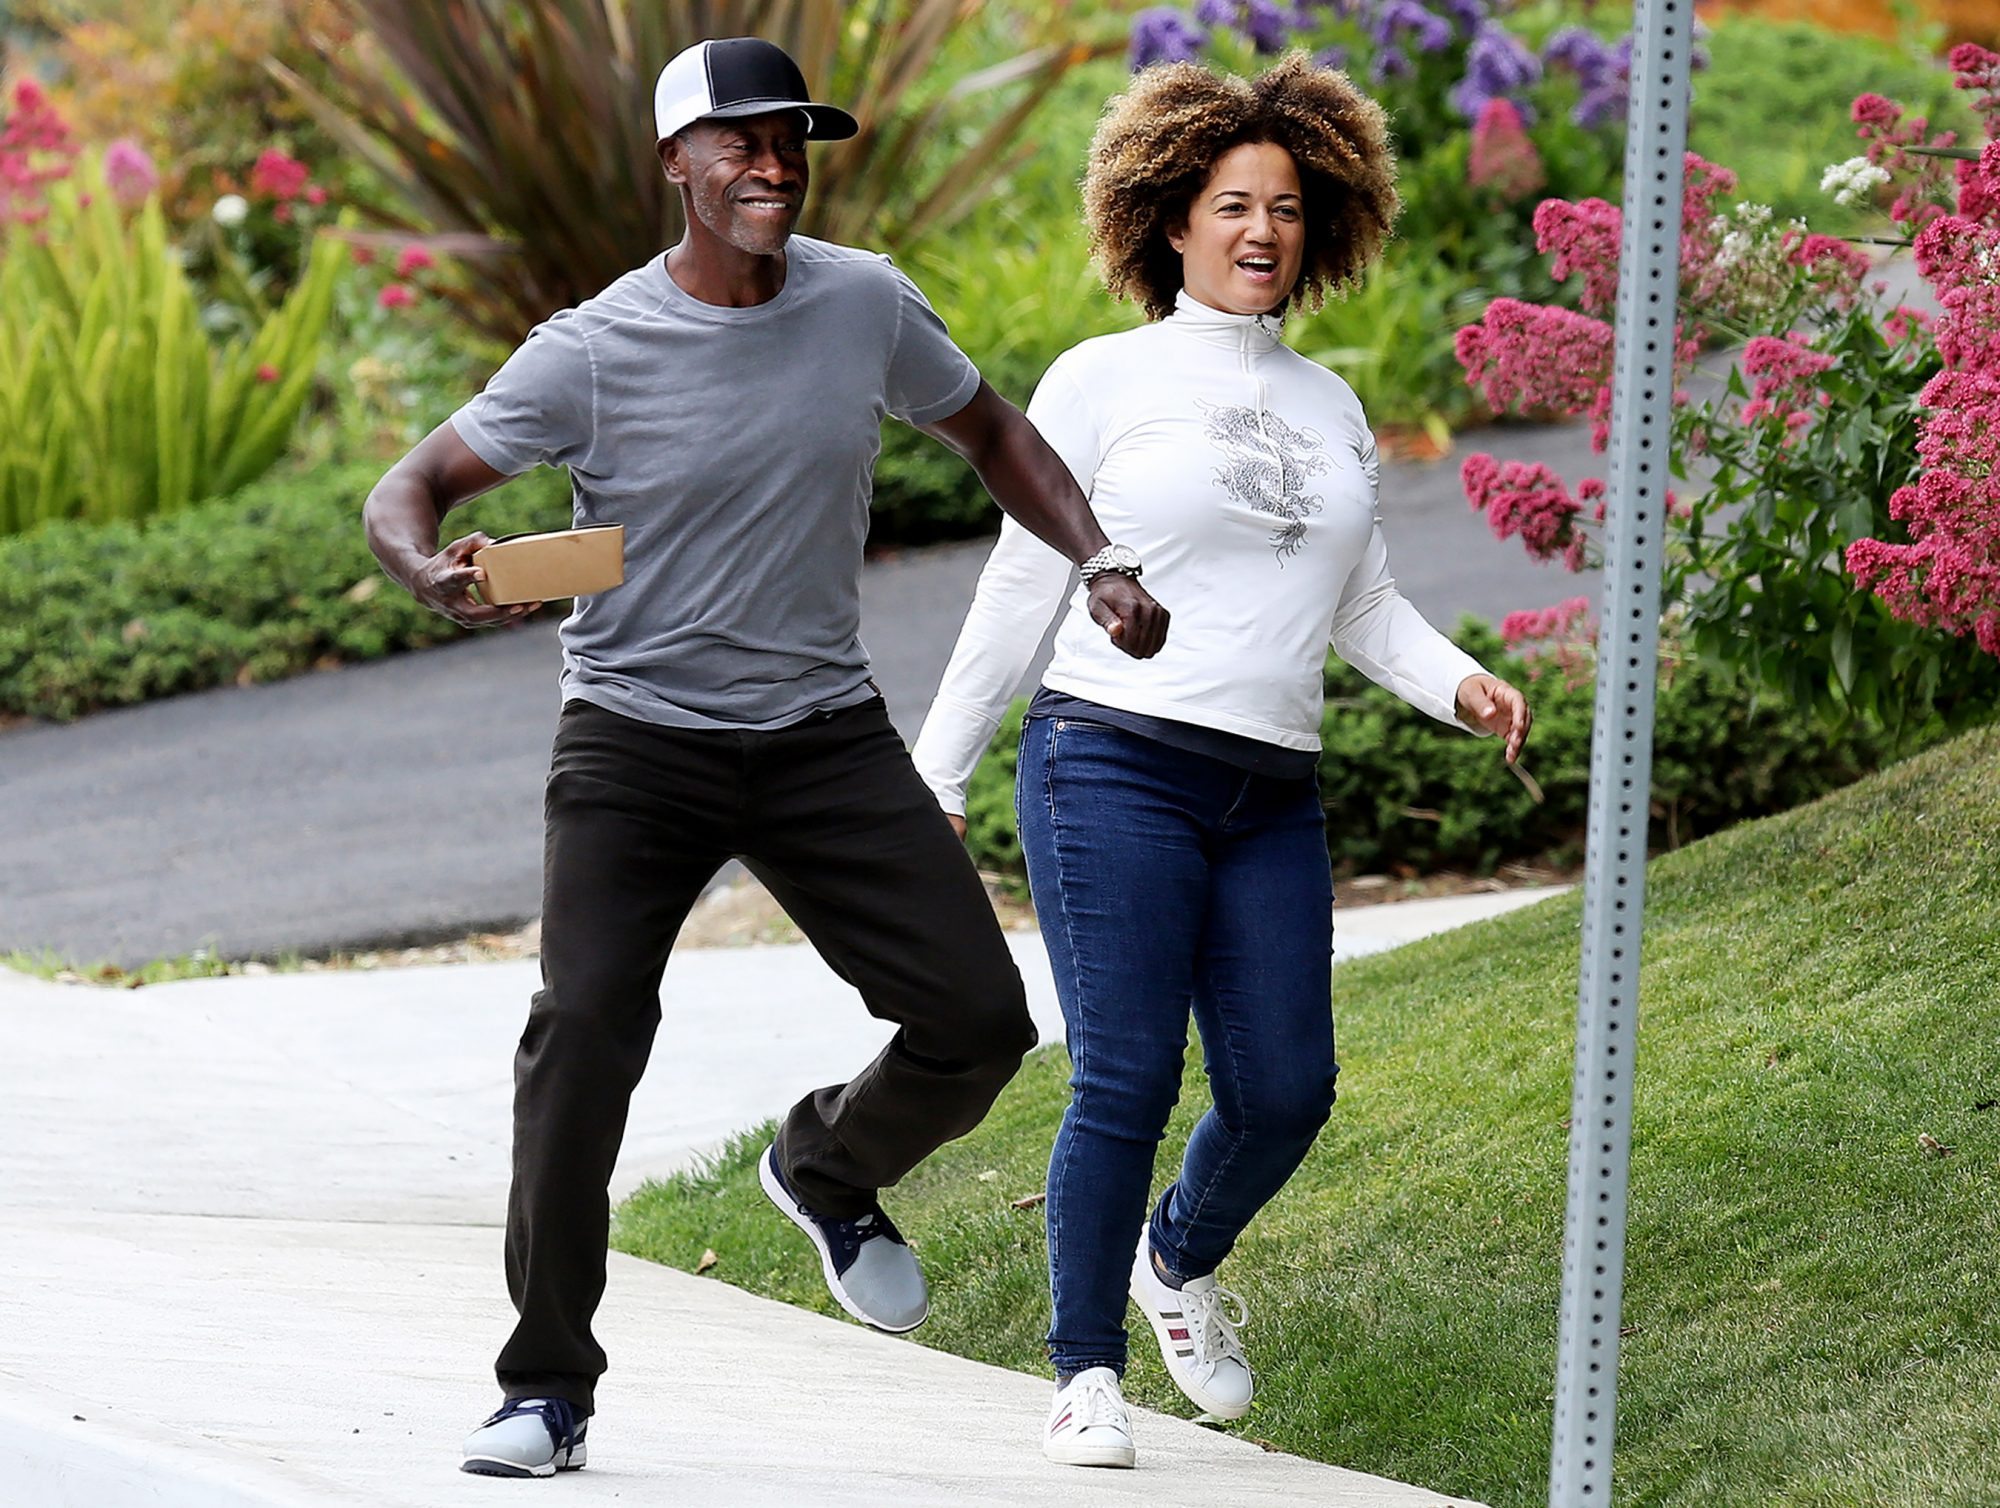 EXCLUSIVE: Don Cheadle gets silly with wife while walking off breakfast in LA.